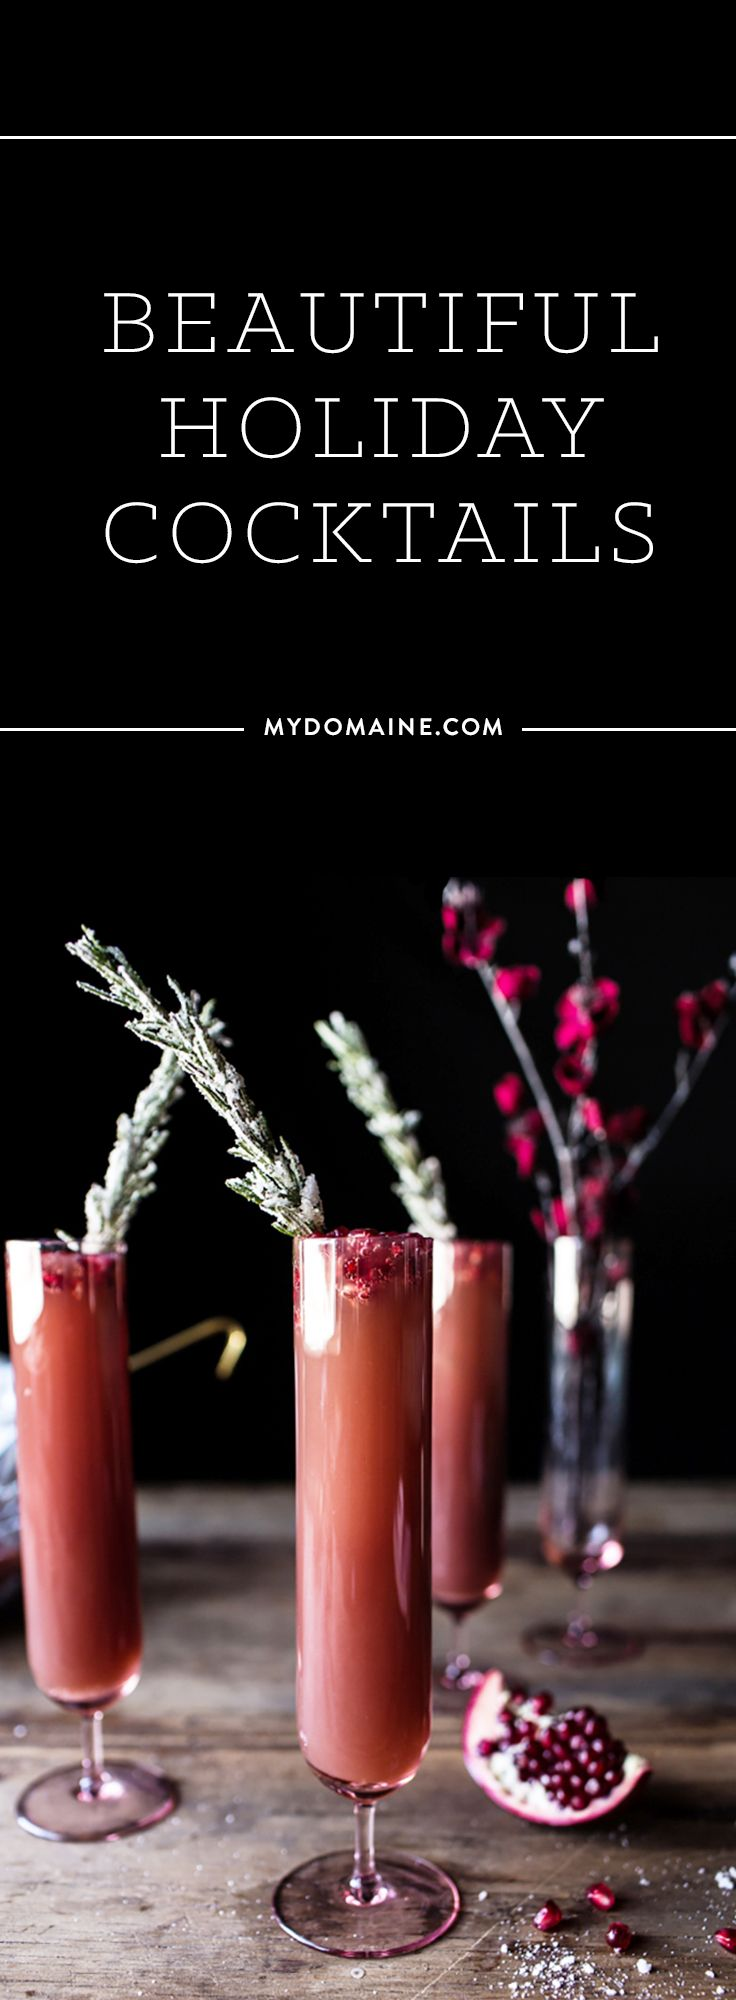 Delicious cocktails to make this holiday season